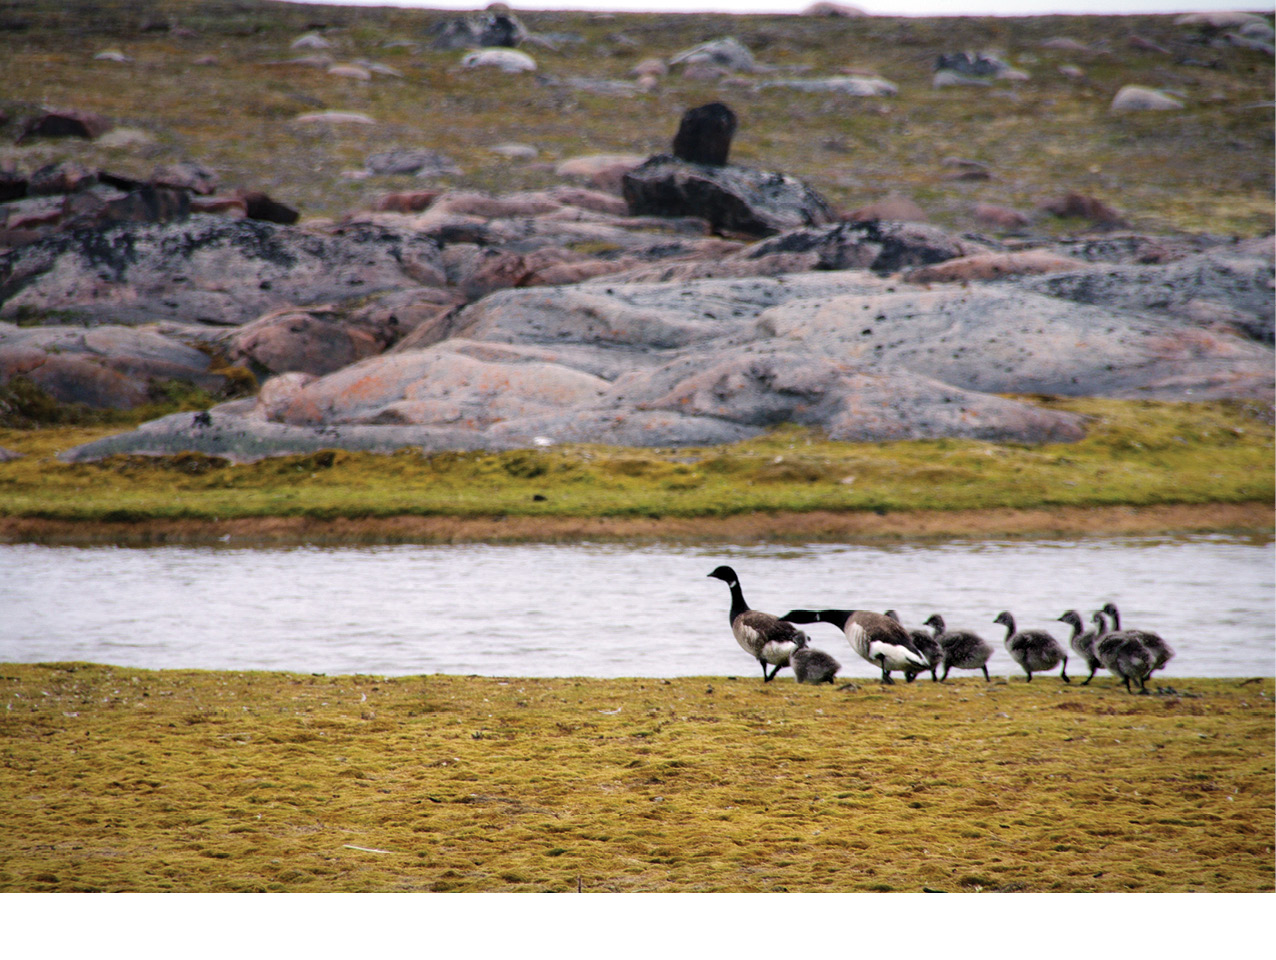 above A family of geese run for cover as we walk towards the site. Uglit is well known for the many birds that nest there in the summer, and is a favourite spot for collecting duck eggs.